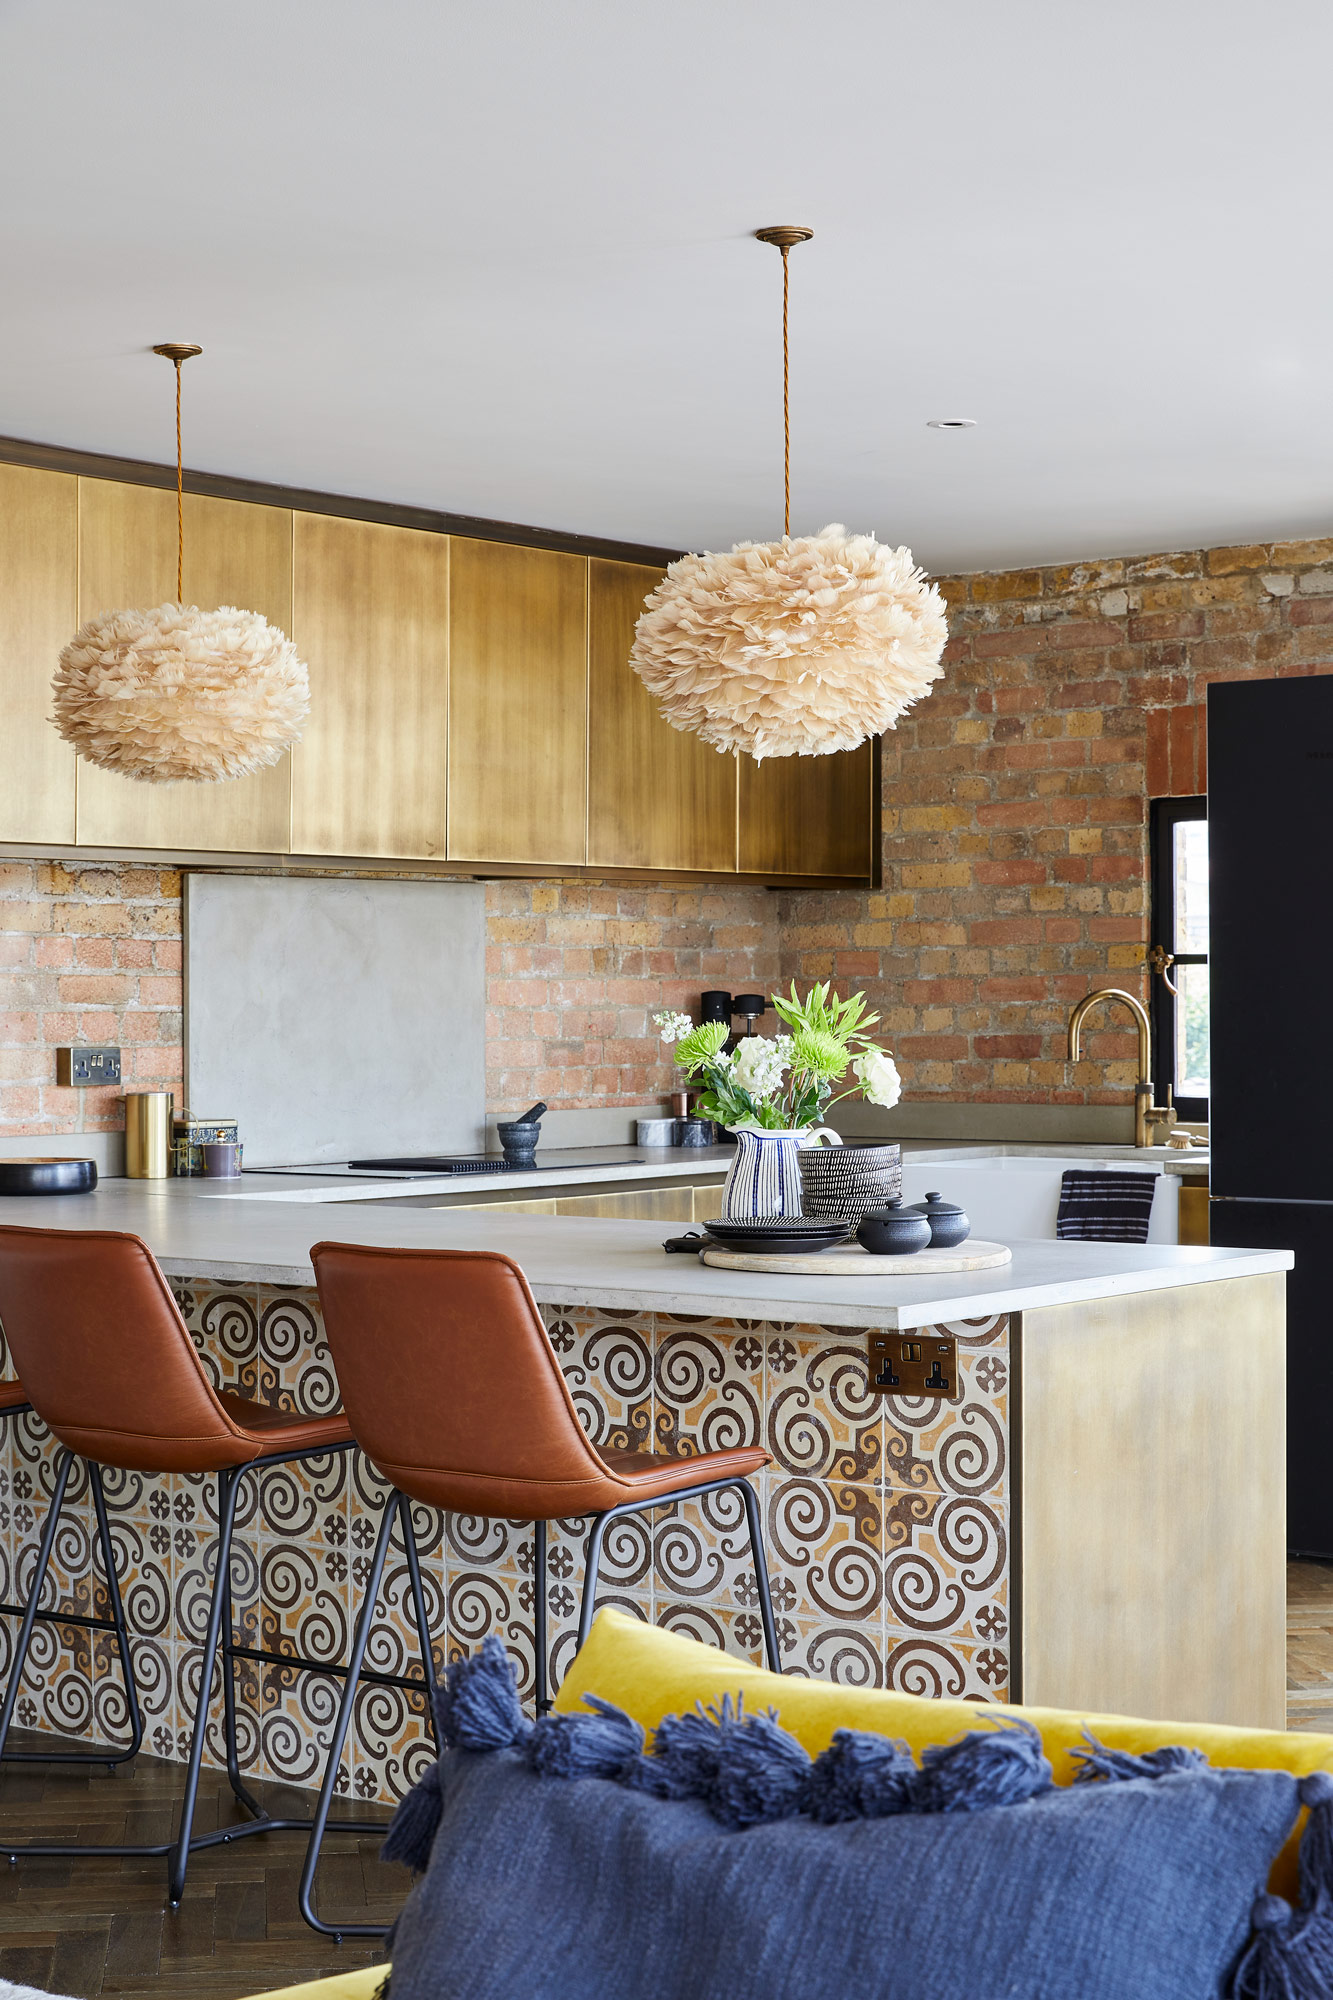 Reclaimed tiled metal kitchen with brown leather barstools